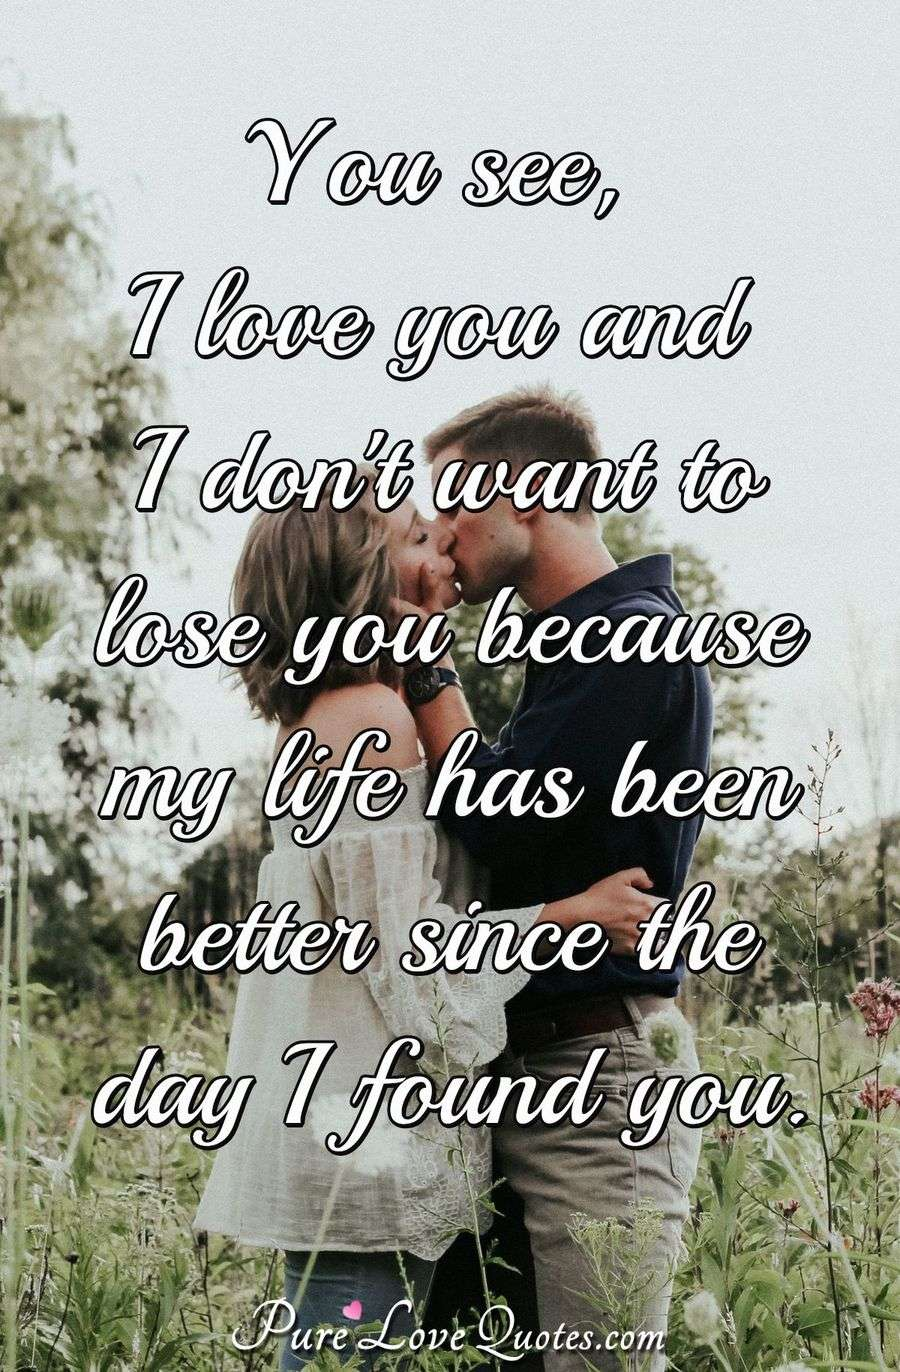 You see, I love you and I don't want to lose you because my life has been better since the day I found you. - Anonymous